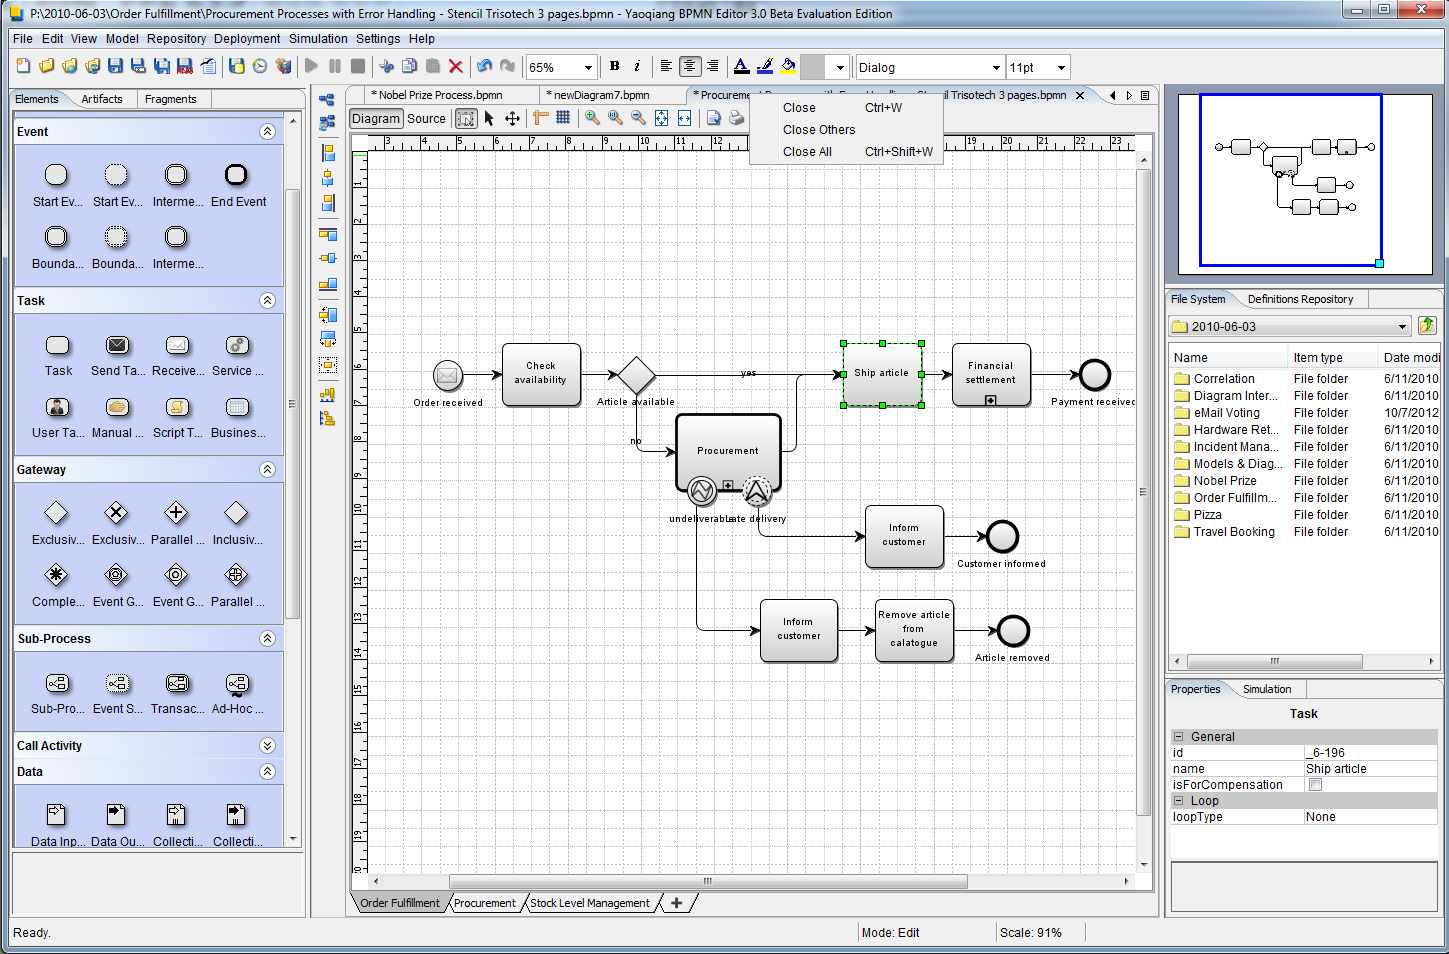 Yaoqiang bpmn editor download Open source diagram tool